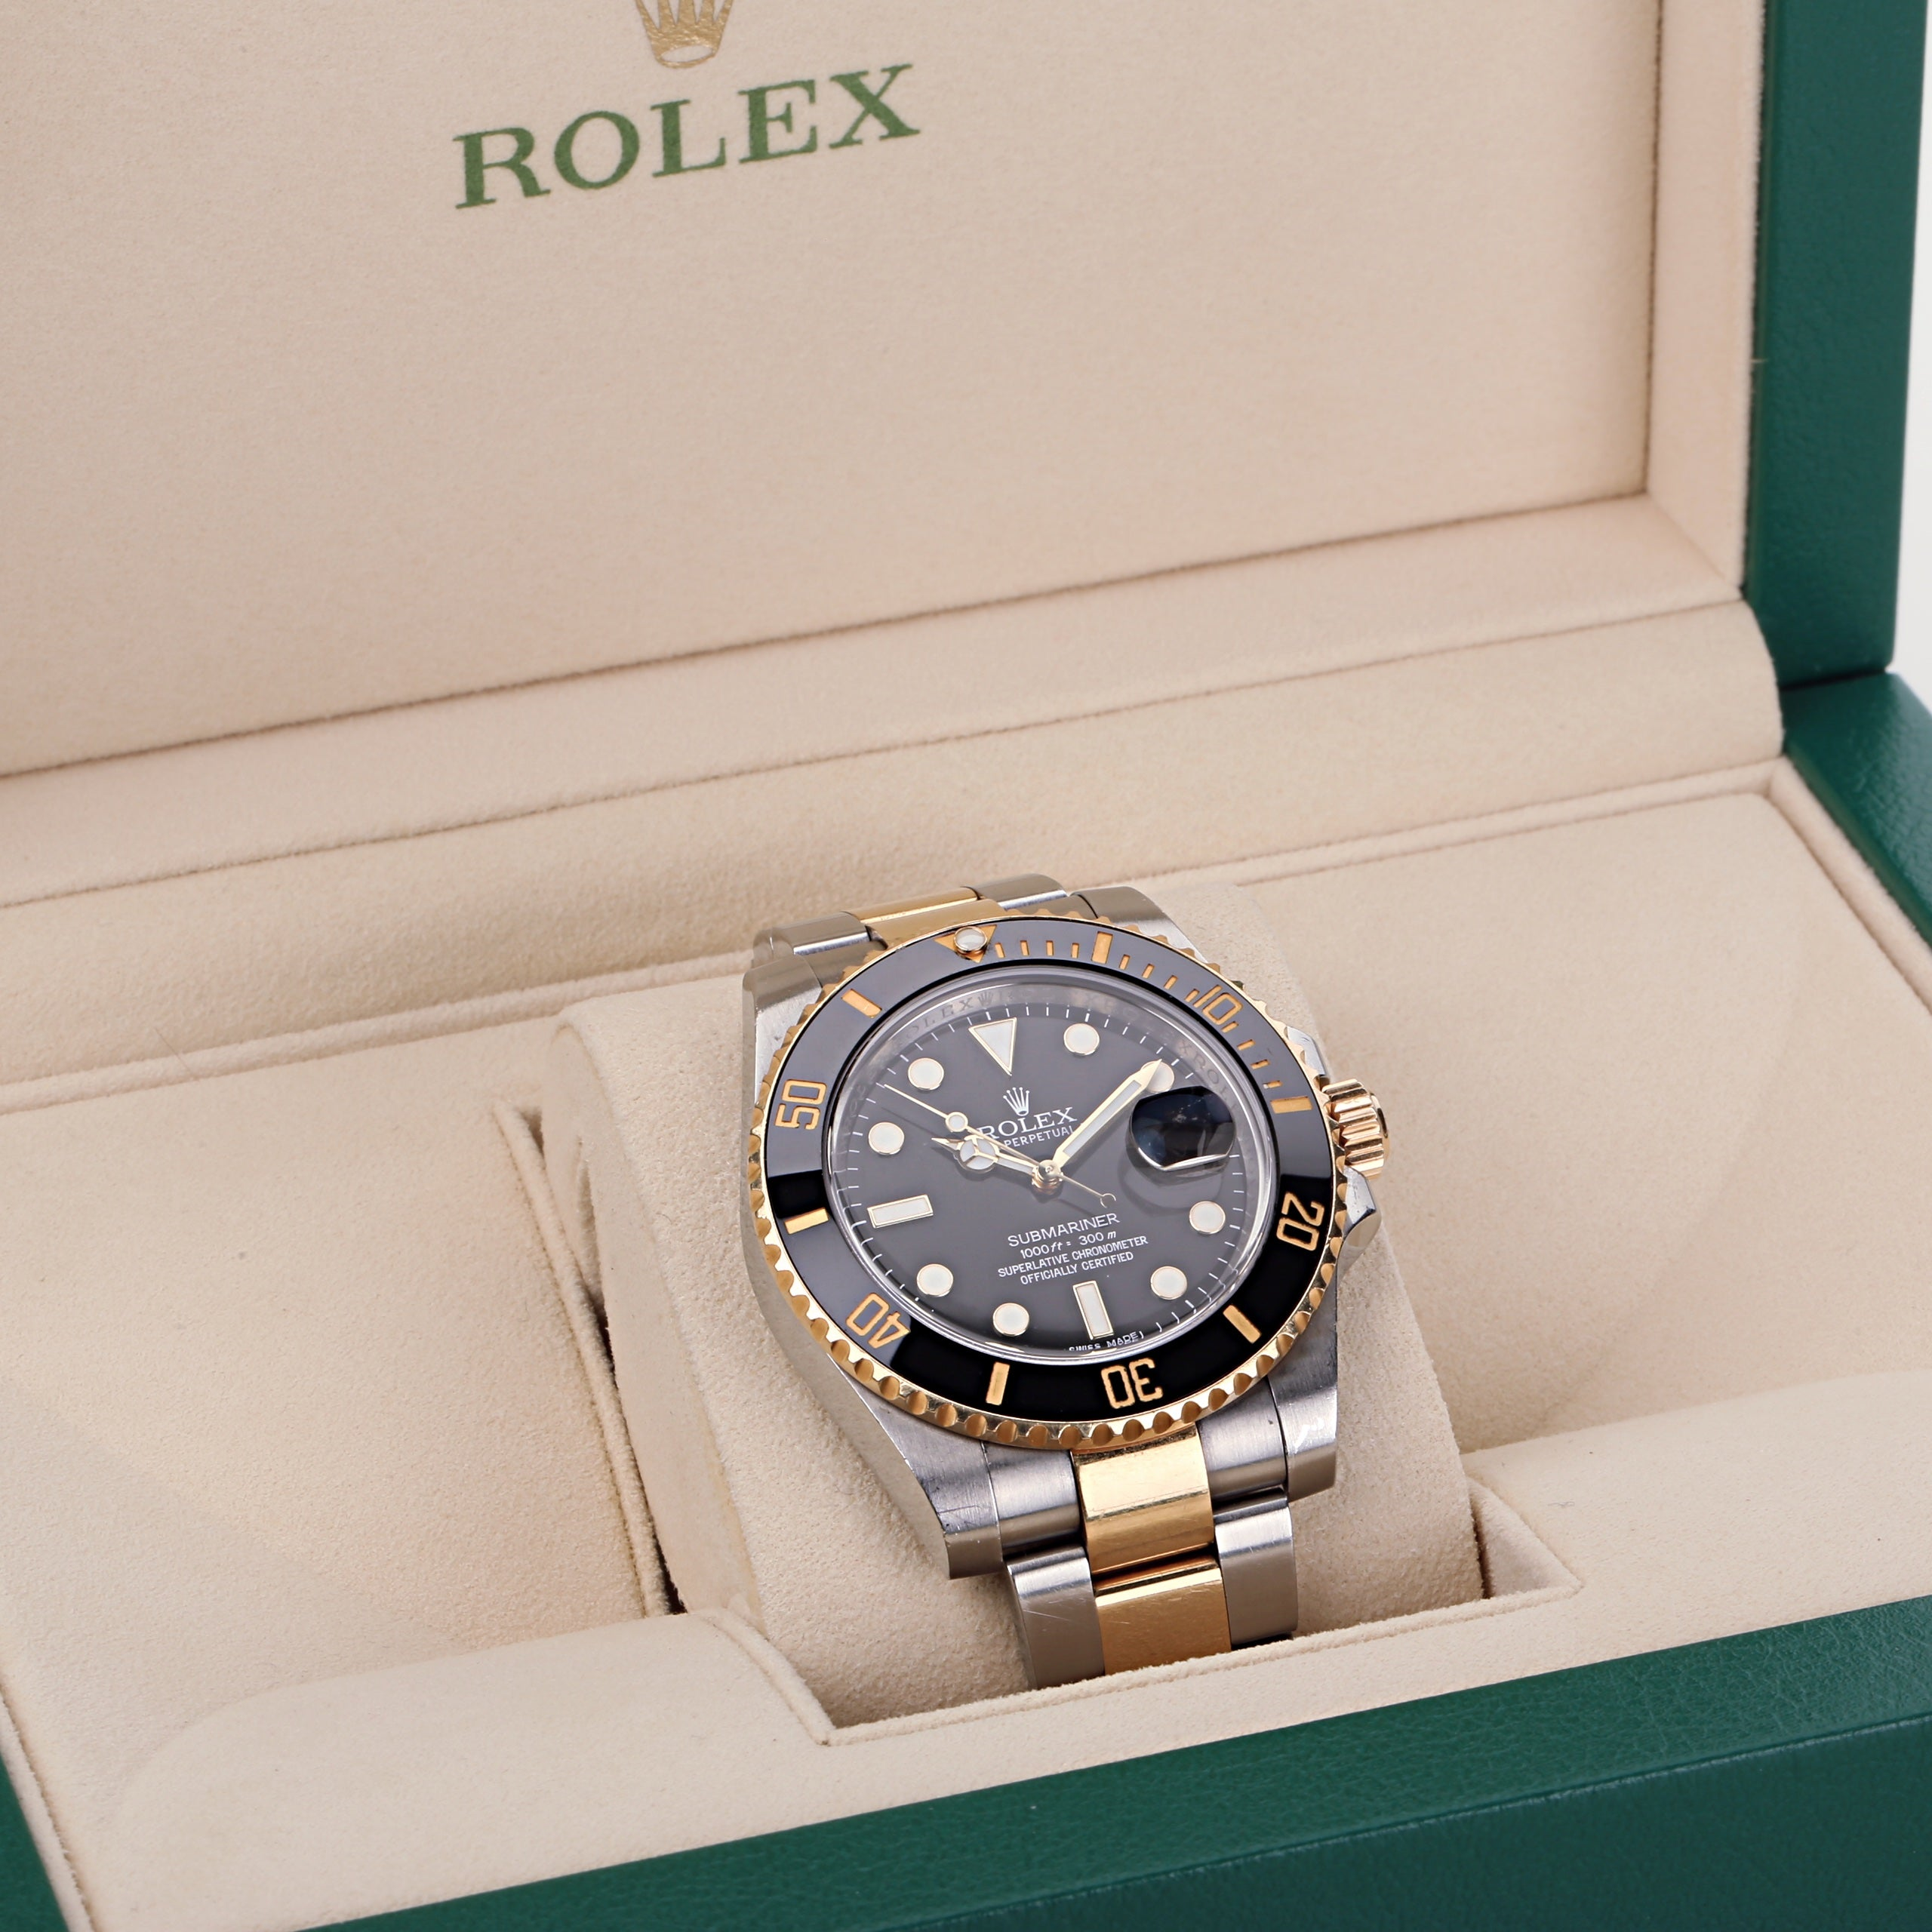 Rolex submariner two tone 18k gold and steel black dial ceramic bezel ref 116613 - Terrafinejewelry